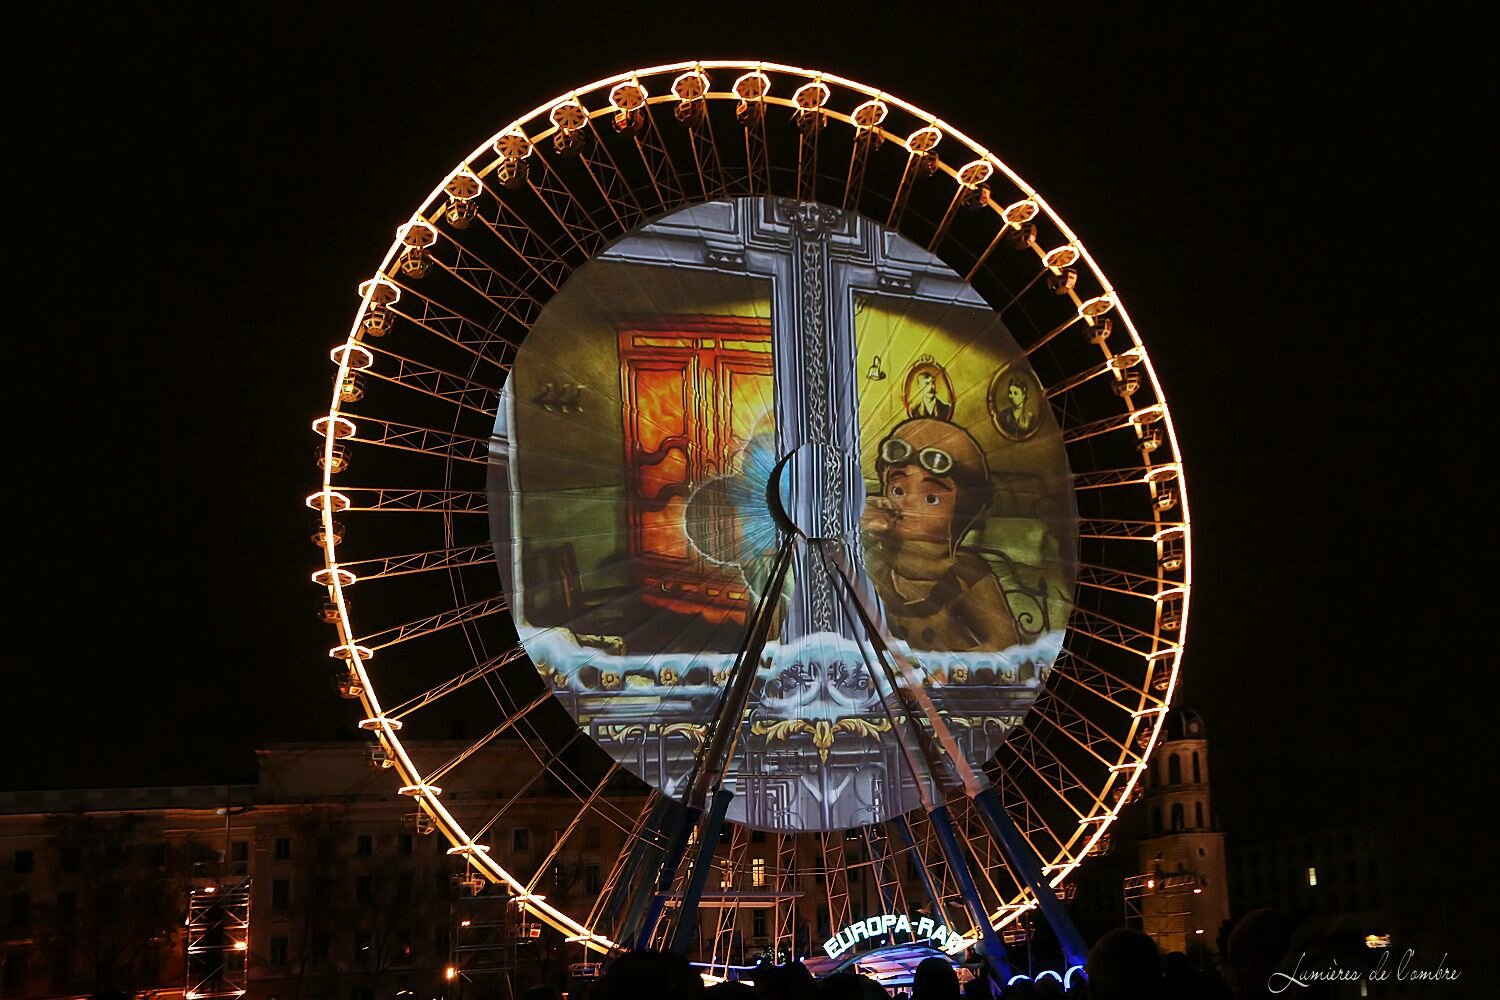 Bellecour_20141208_7113wb